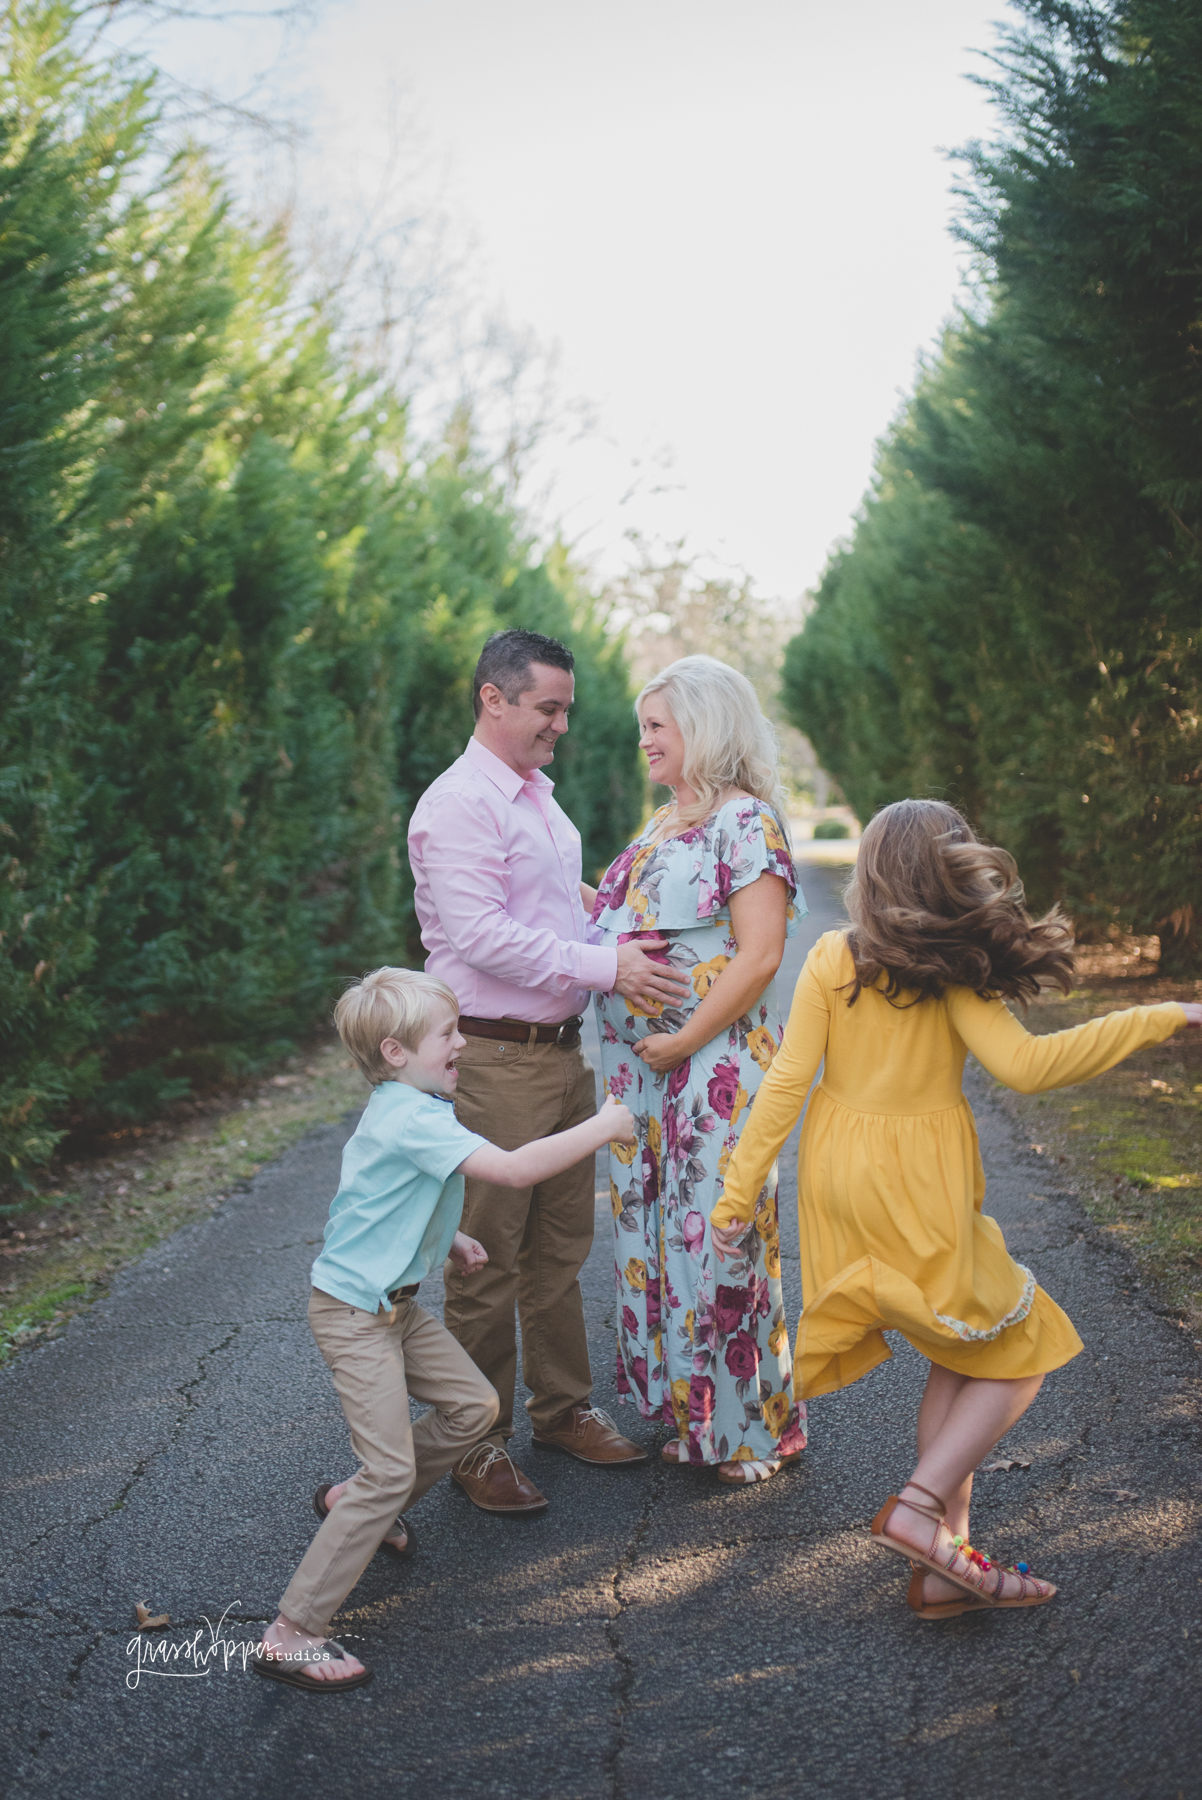 Jackson, TN maternity photographer2